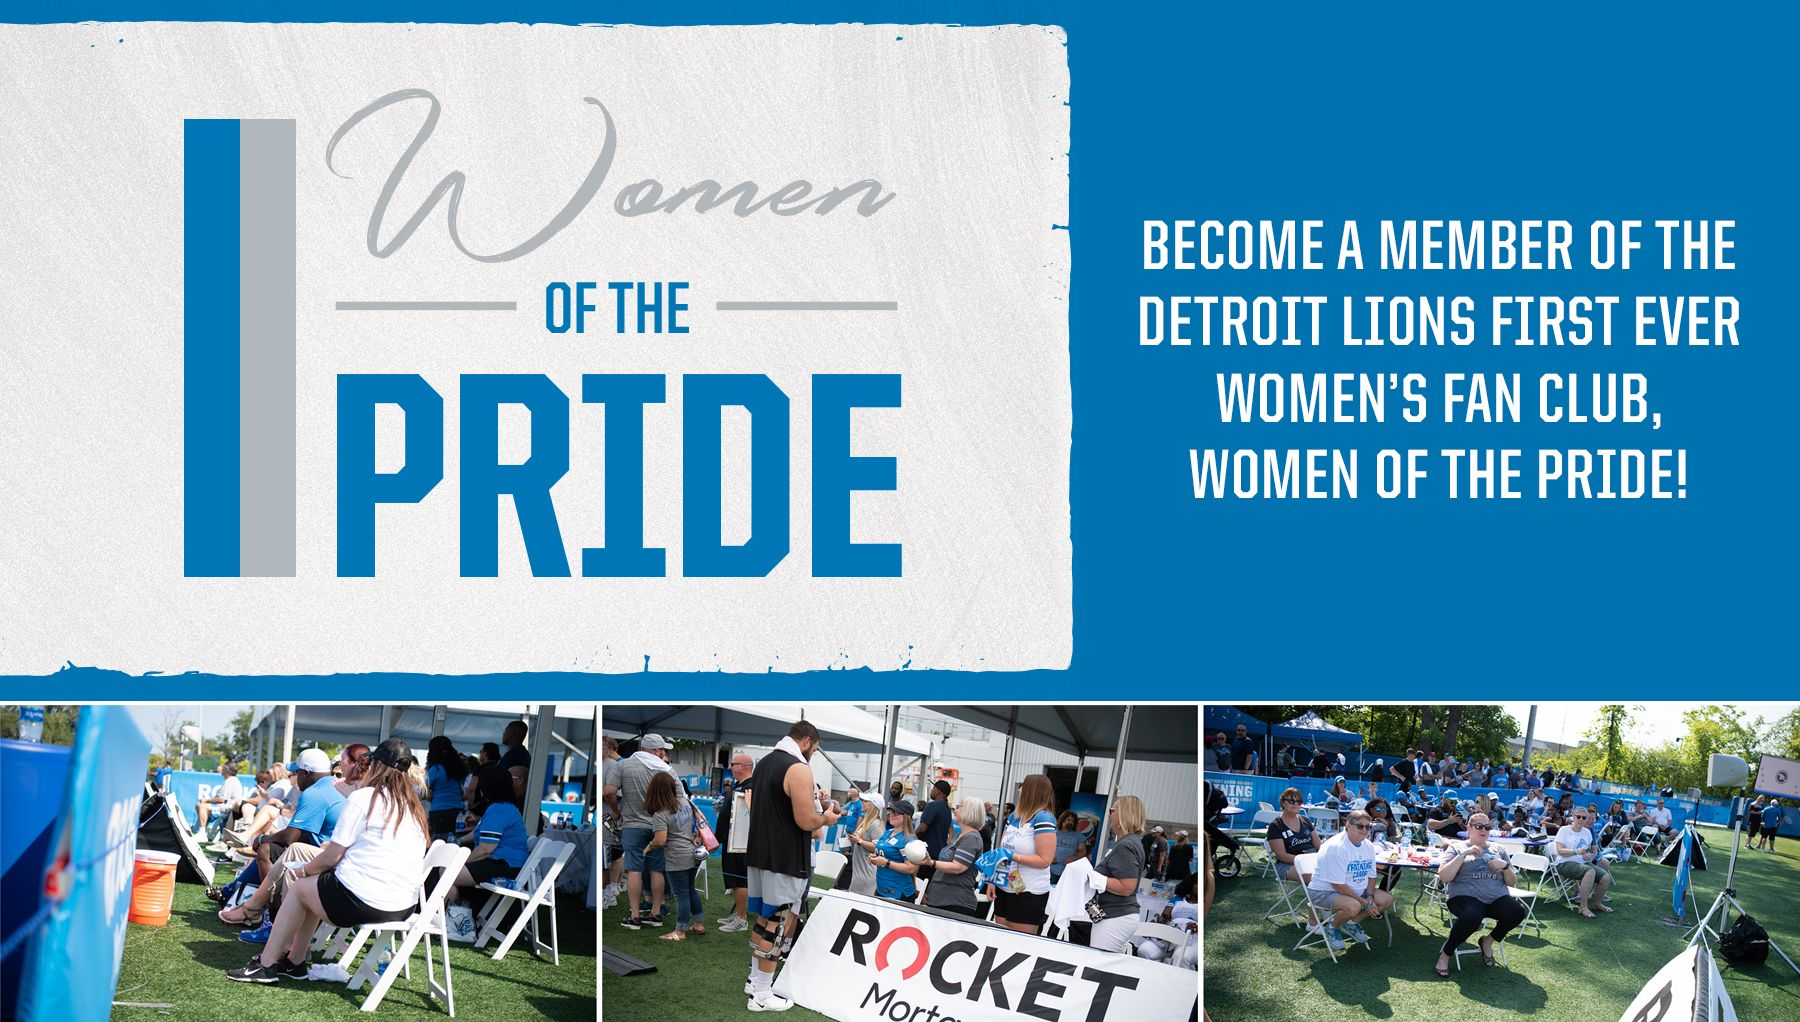 women-of-the-pride-header-offseason